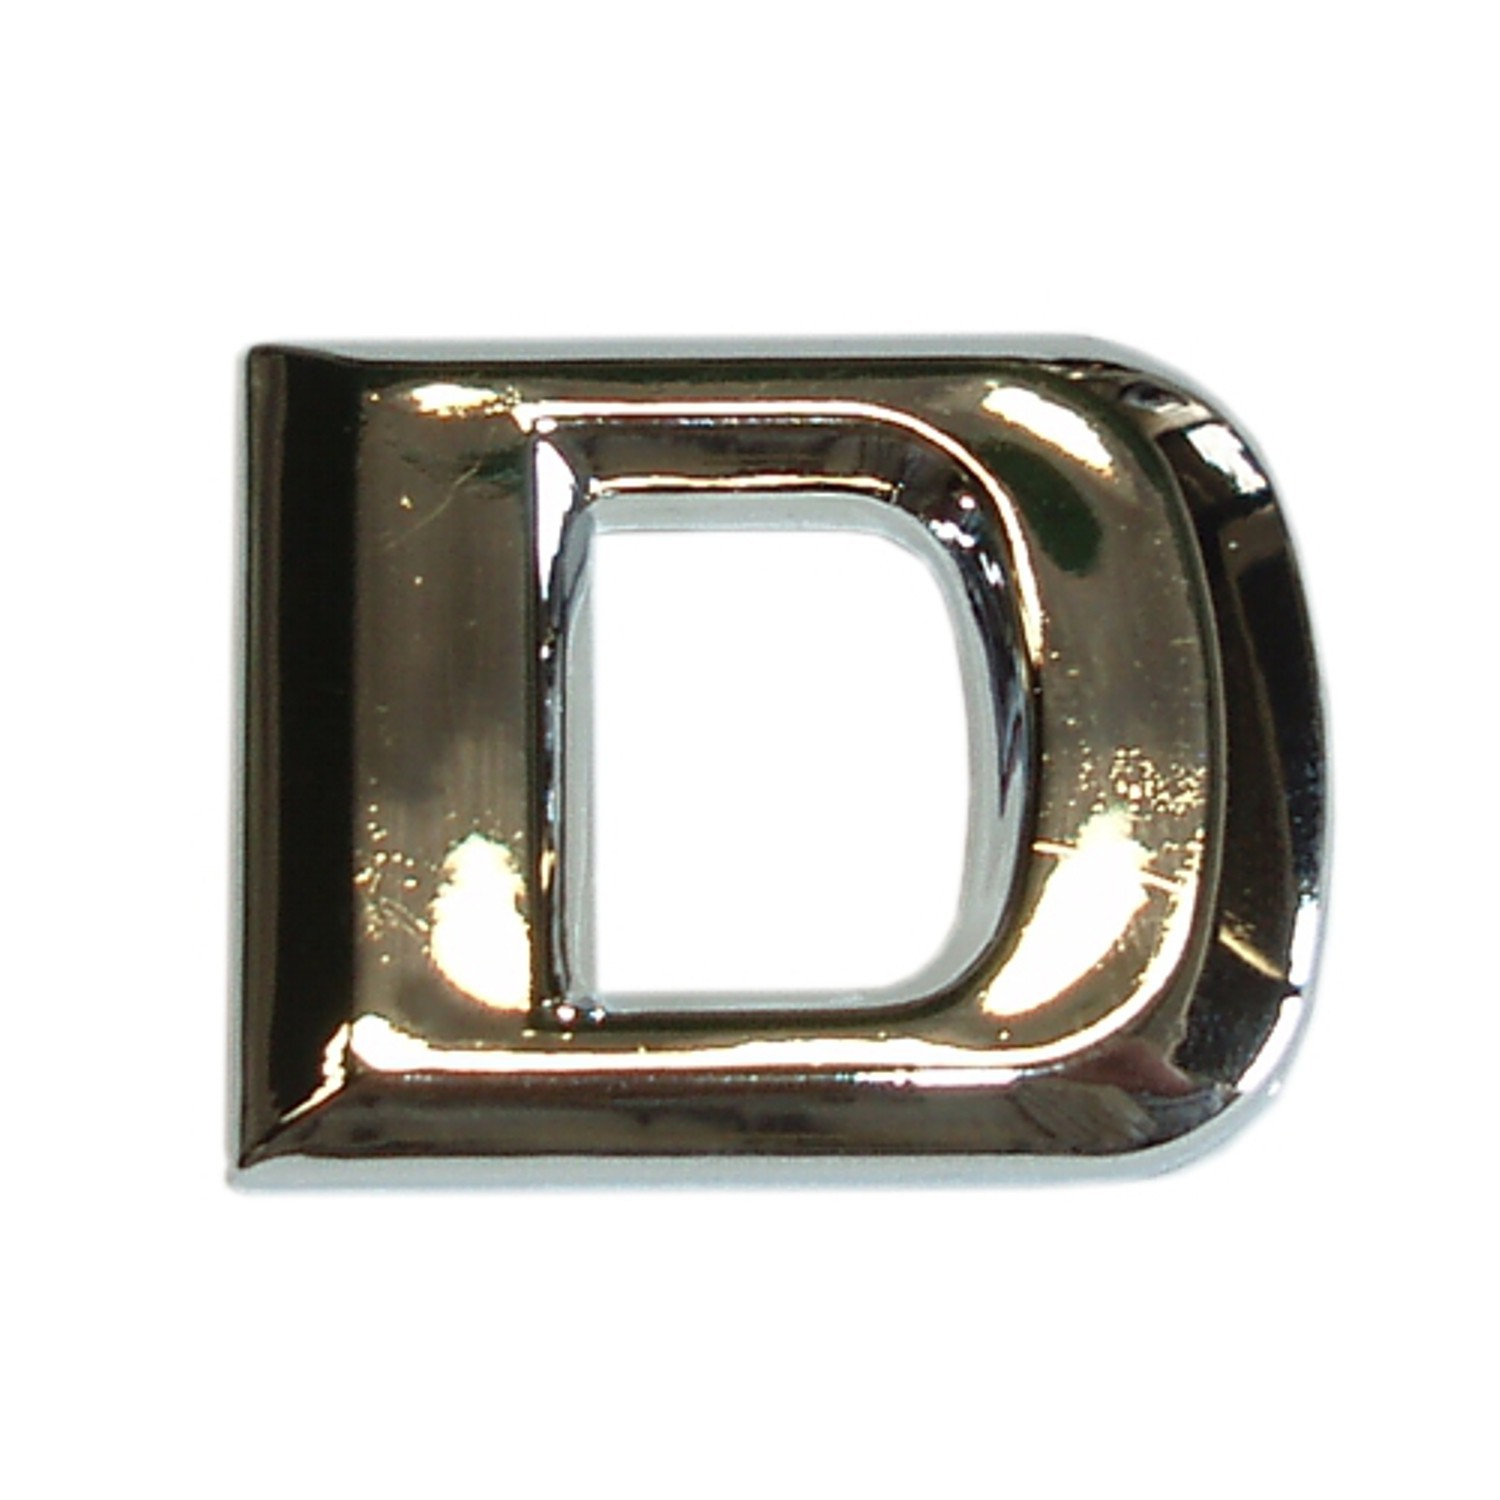 3D-Relief-Chrome-Buchstabe D